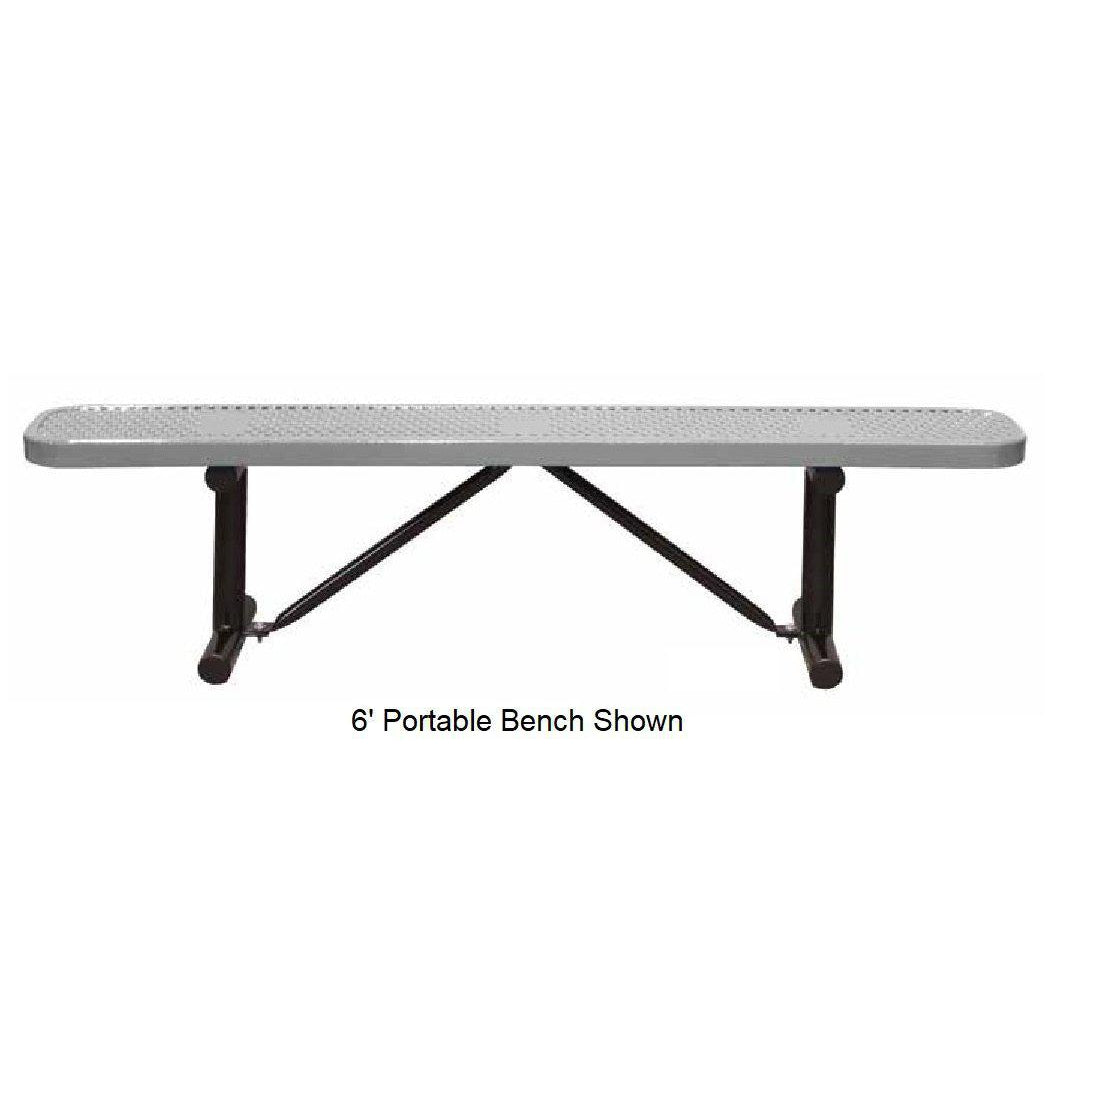 10' Standard Perforated Bench Without Back, Portable